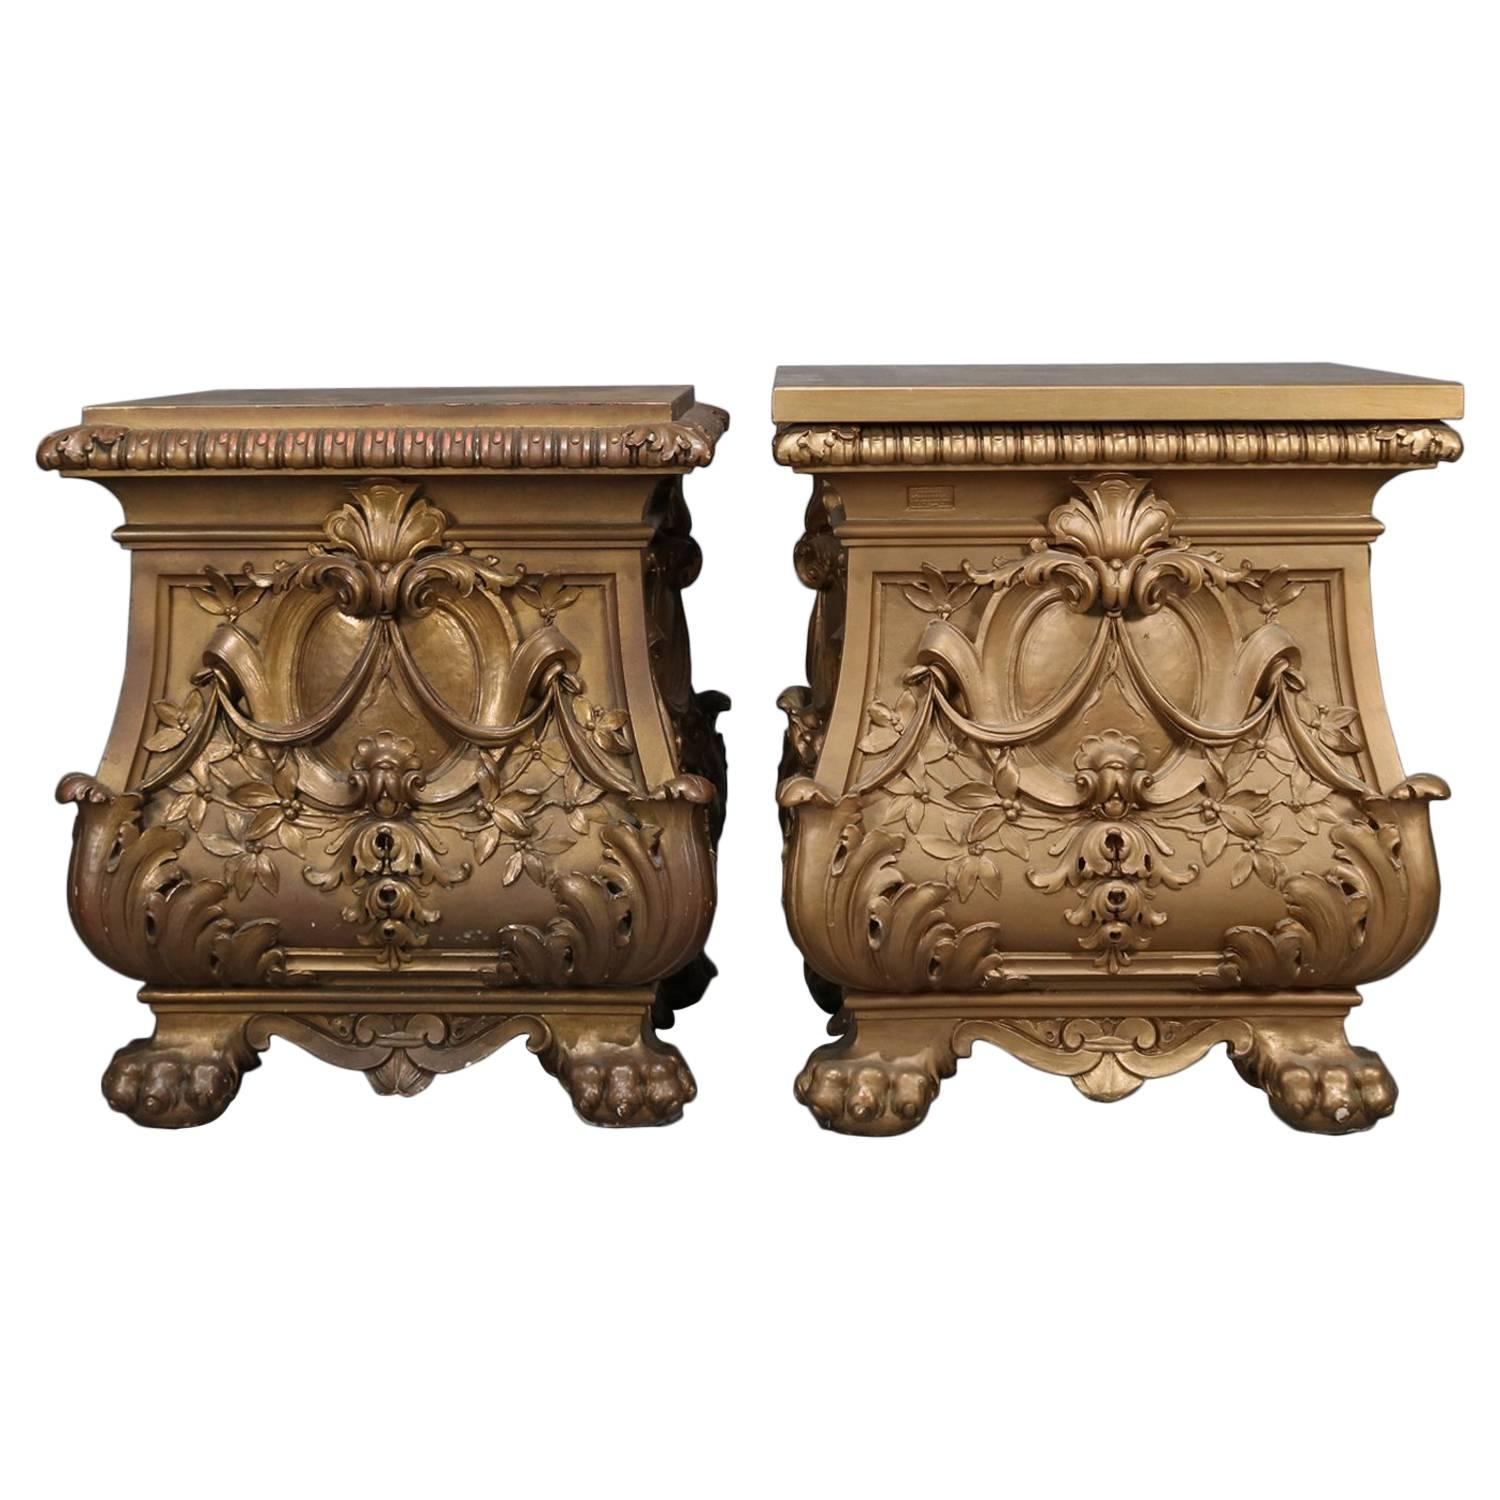 Oversized French Style Gilt Statuary Bombe Pedestal End Tables By Deprato  For Sale